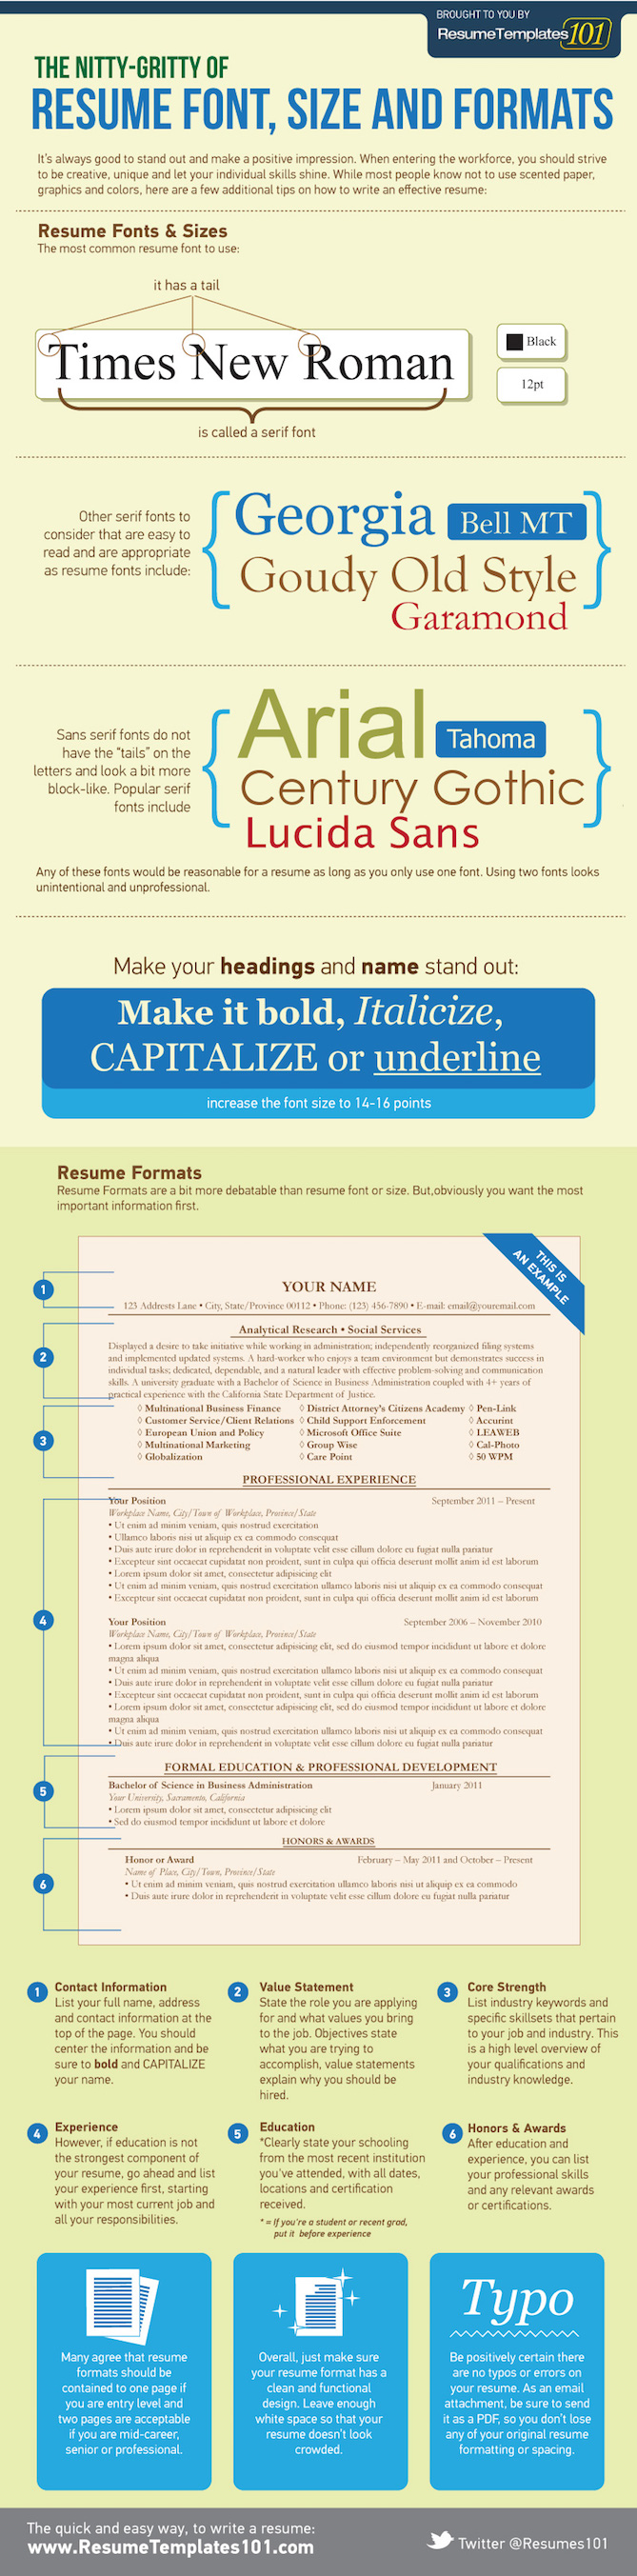 Captivating Infographic On How To Format A Resume Using The Best Font Type, Font Size,